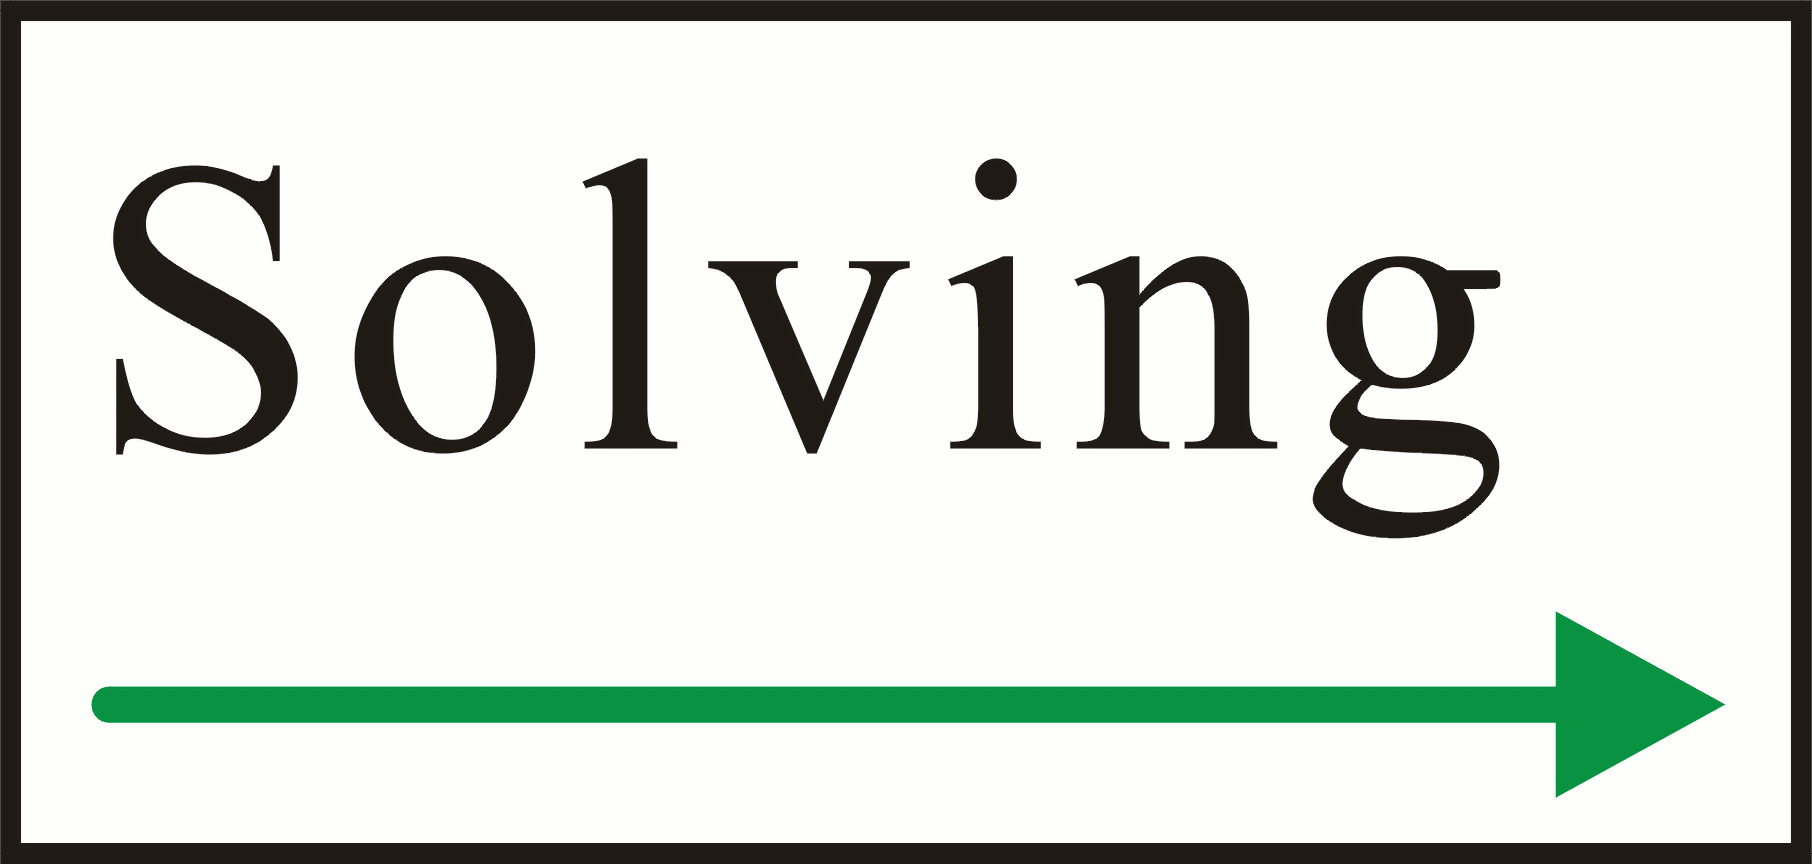 the solving logo in various versions